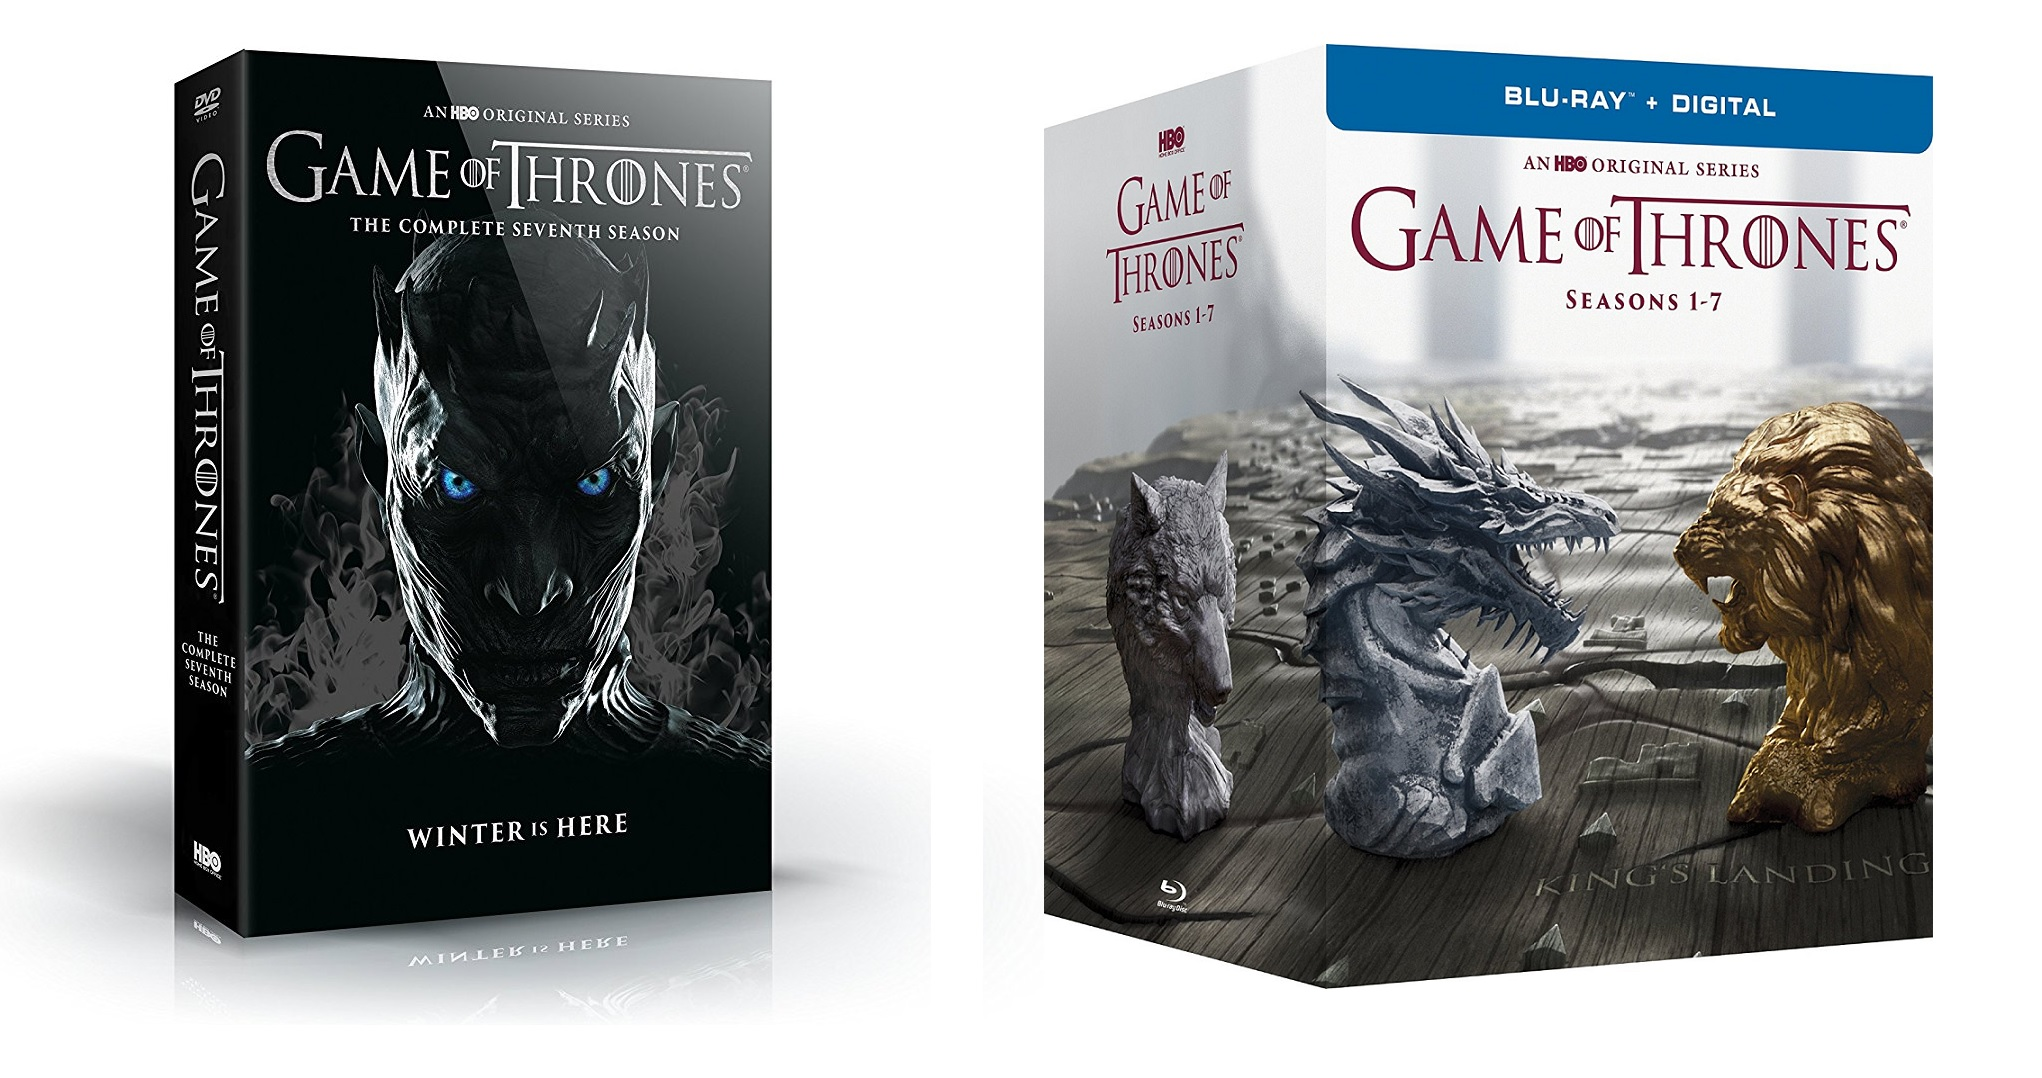 Game of Thrones DVD Season 7 Season 1-7